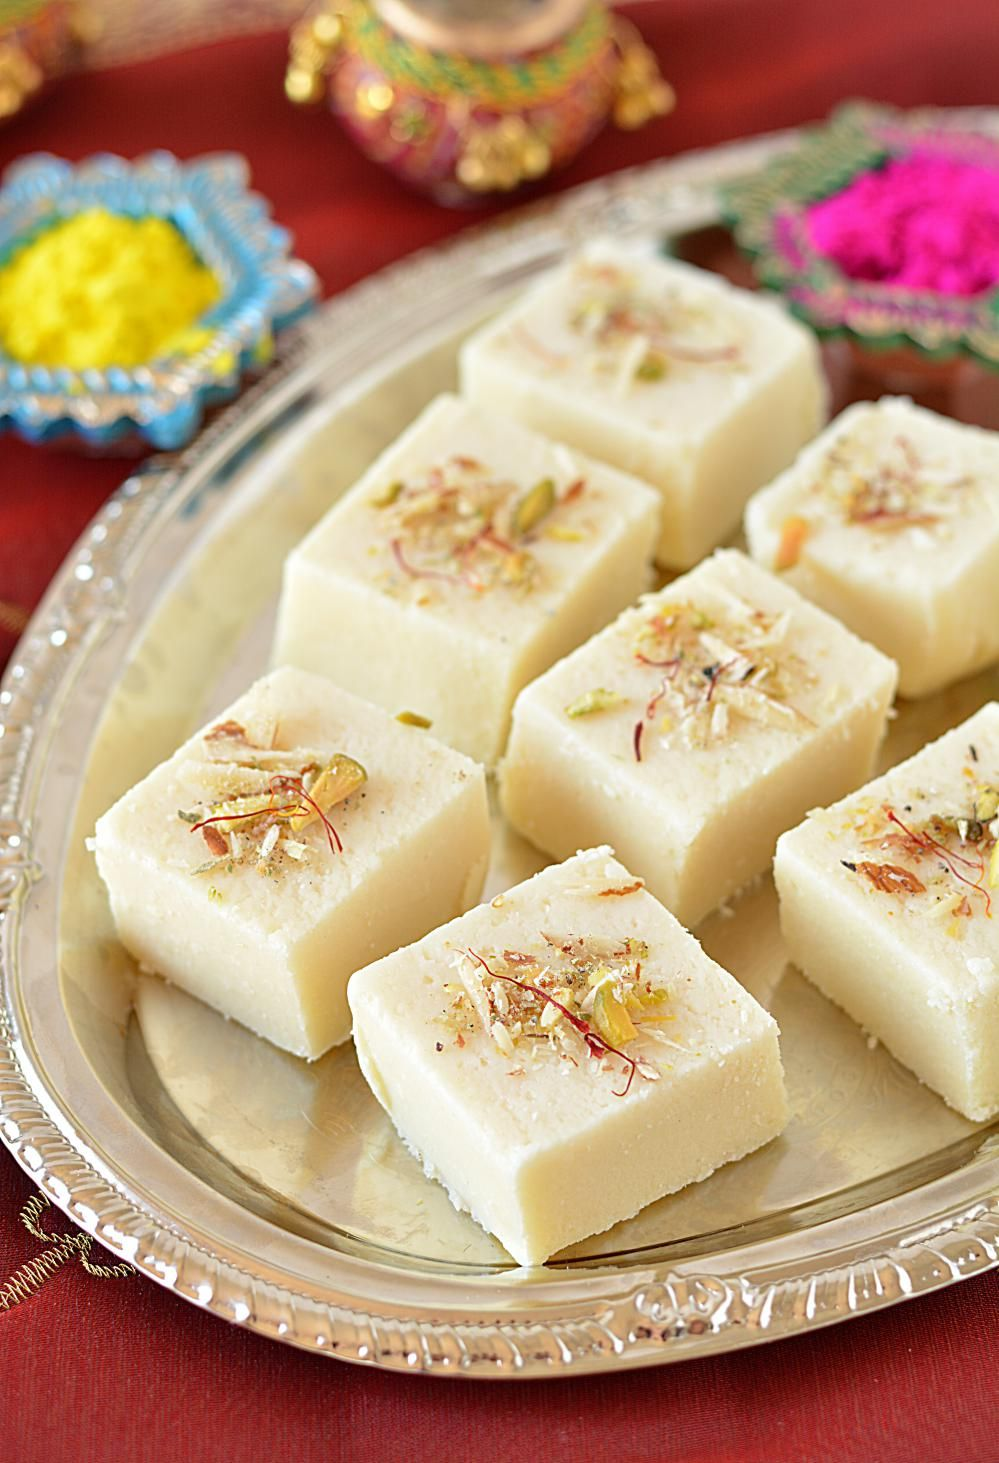 Paneer burfi recipe 1 deserts pinterest indian sweets recipes cooking games forumfinder Image collections